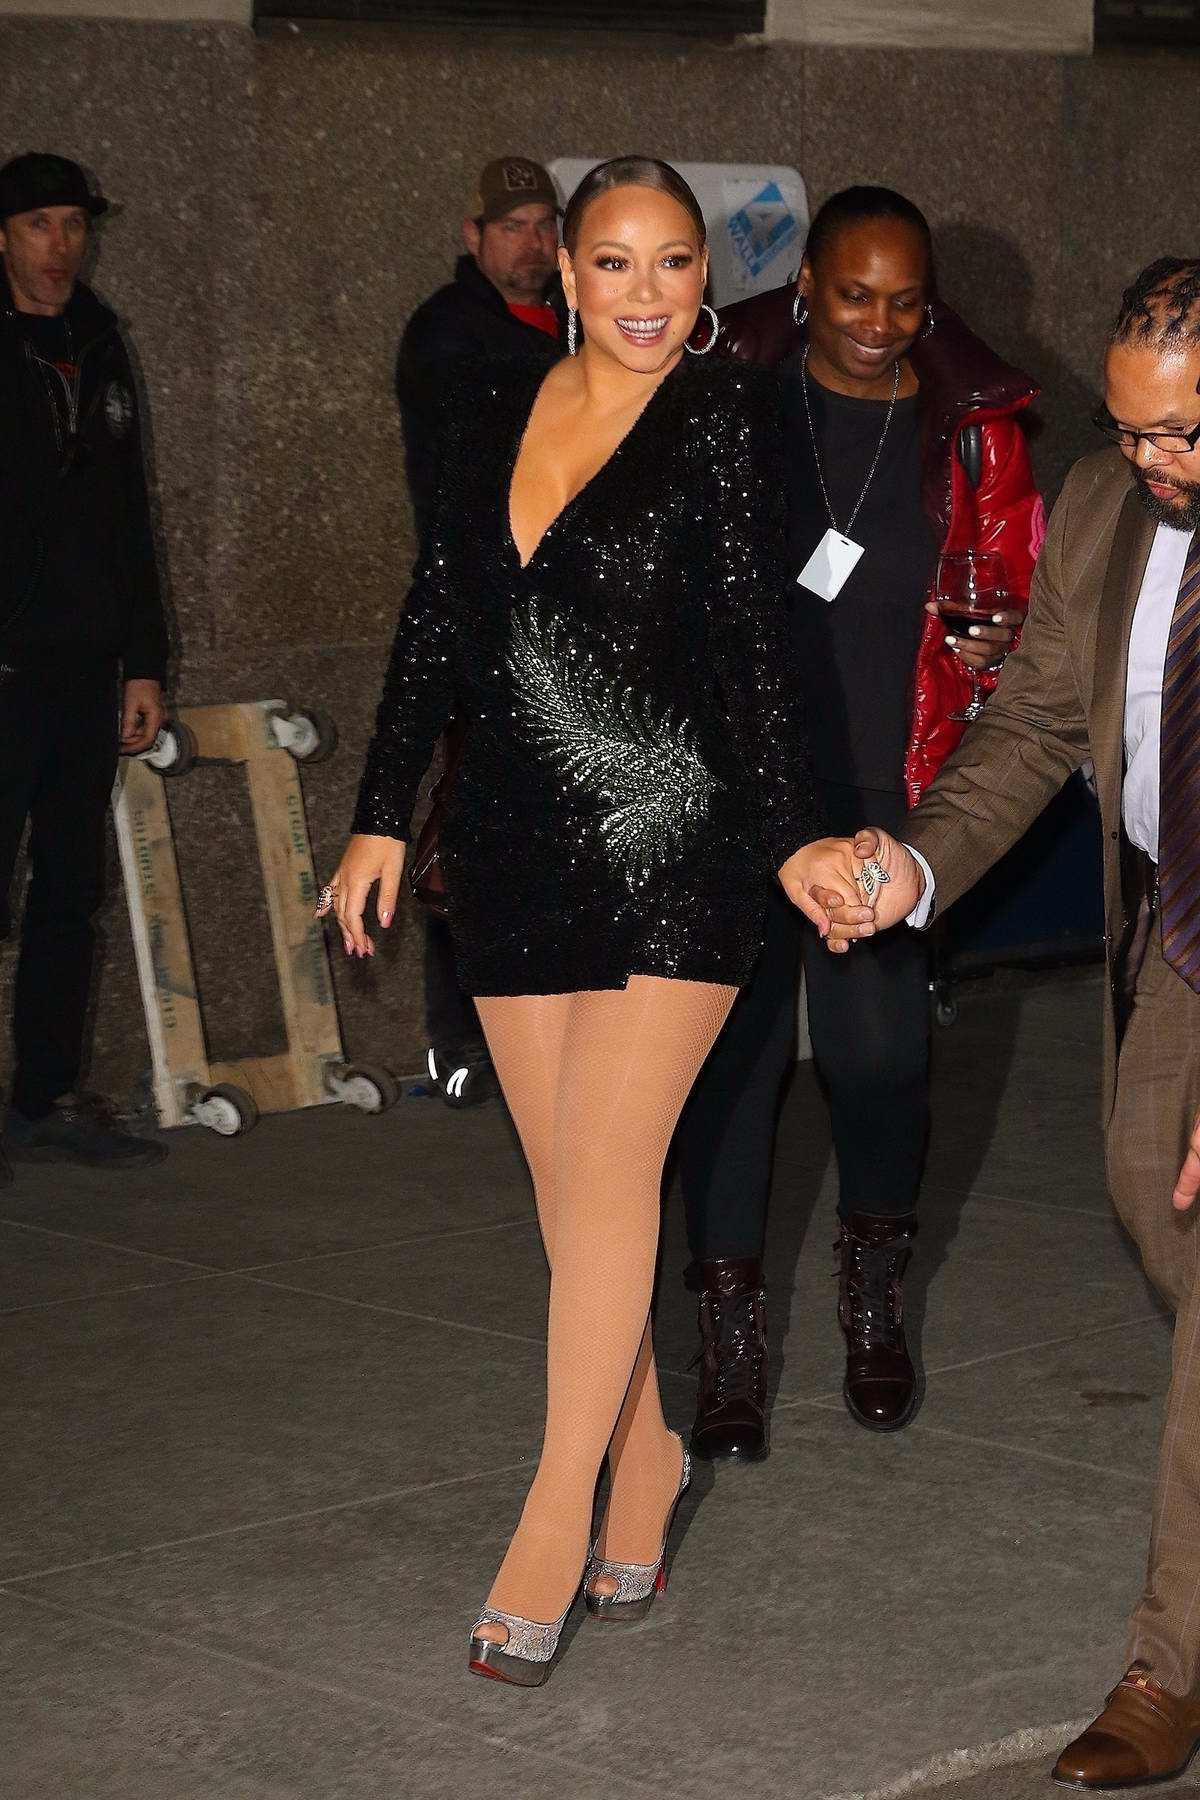 Mariah Carey dons a black mini dress as she leaves Radio City Music Hall in New York City